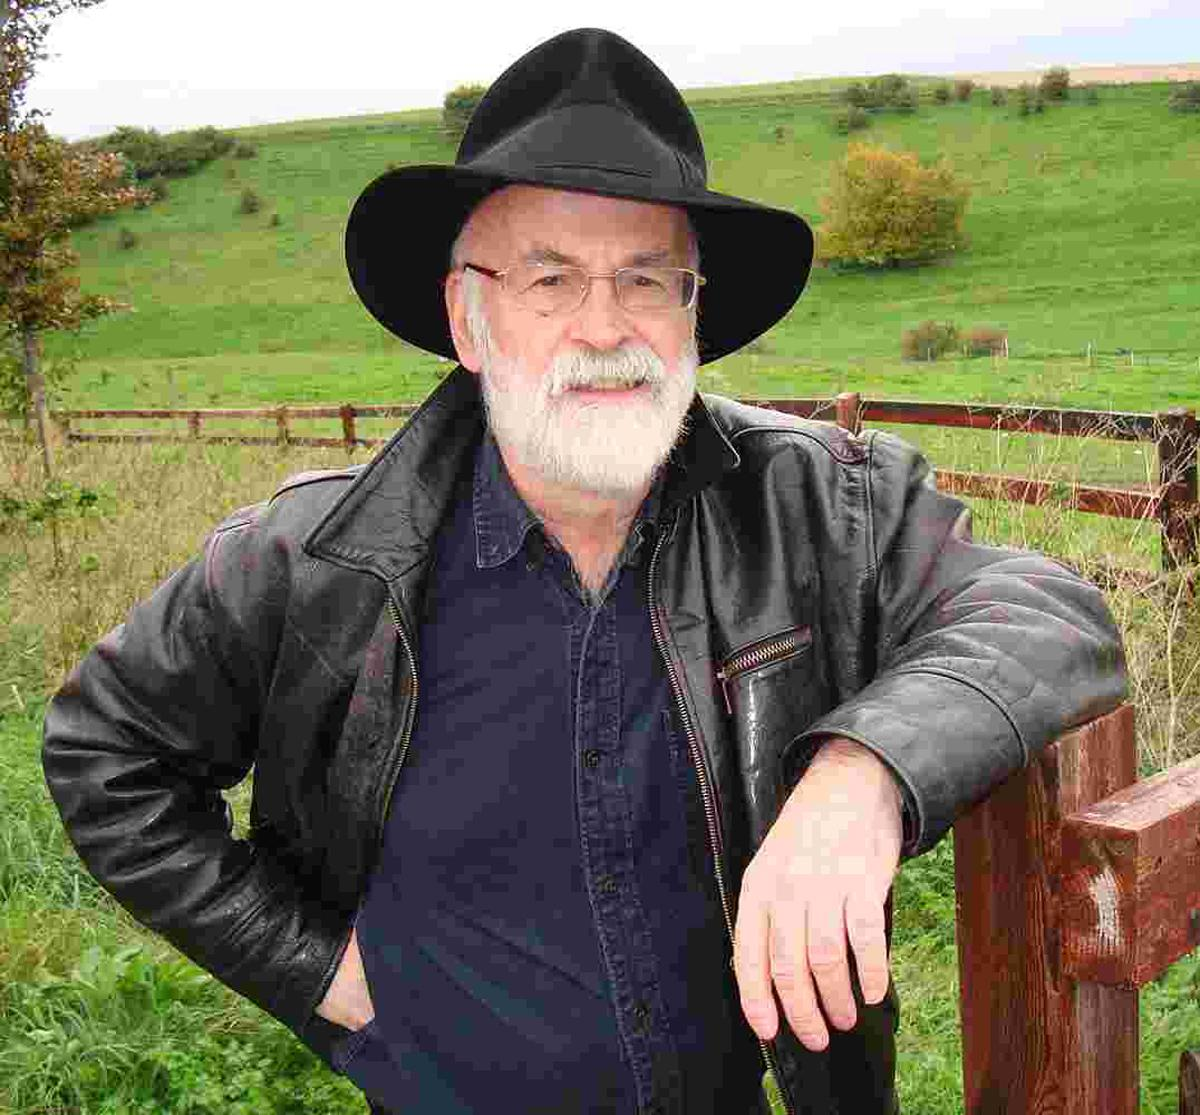 RIP Terry Pratchett